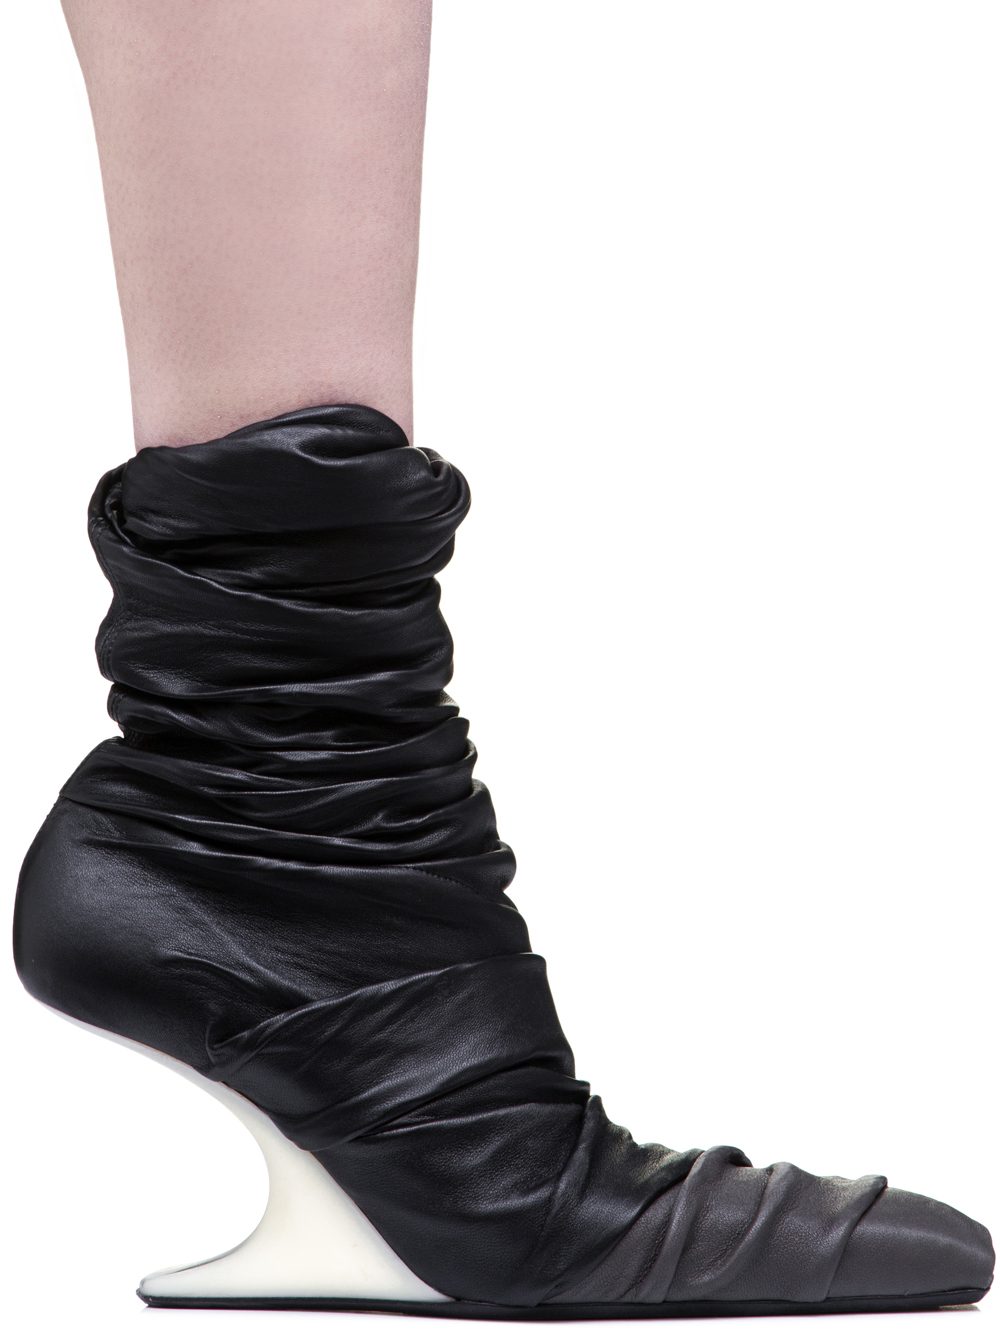 RICK OWENS OFF-THE-RUNWAY 8 CM CANTILEVERED SHOES IN BLACK STRETCH LAMB LEATHER